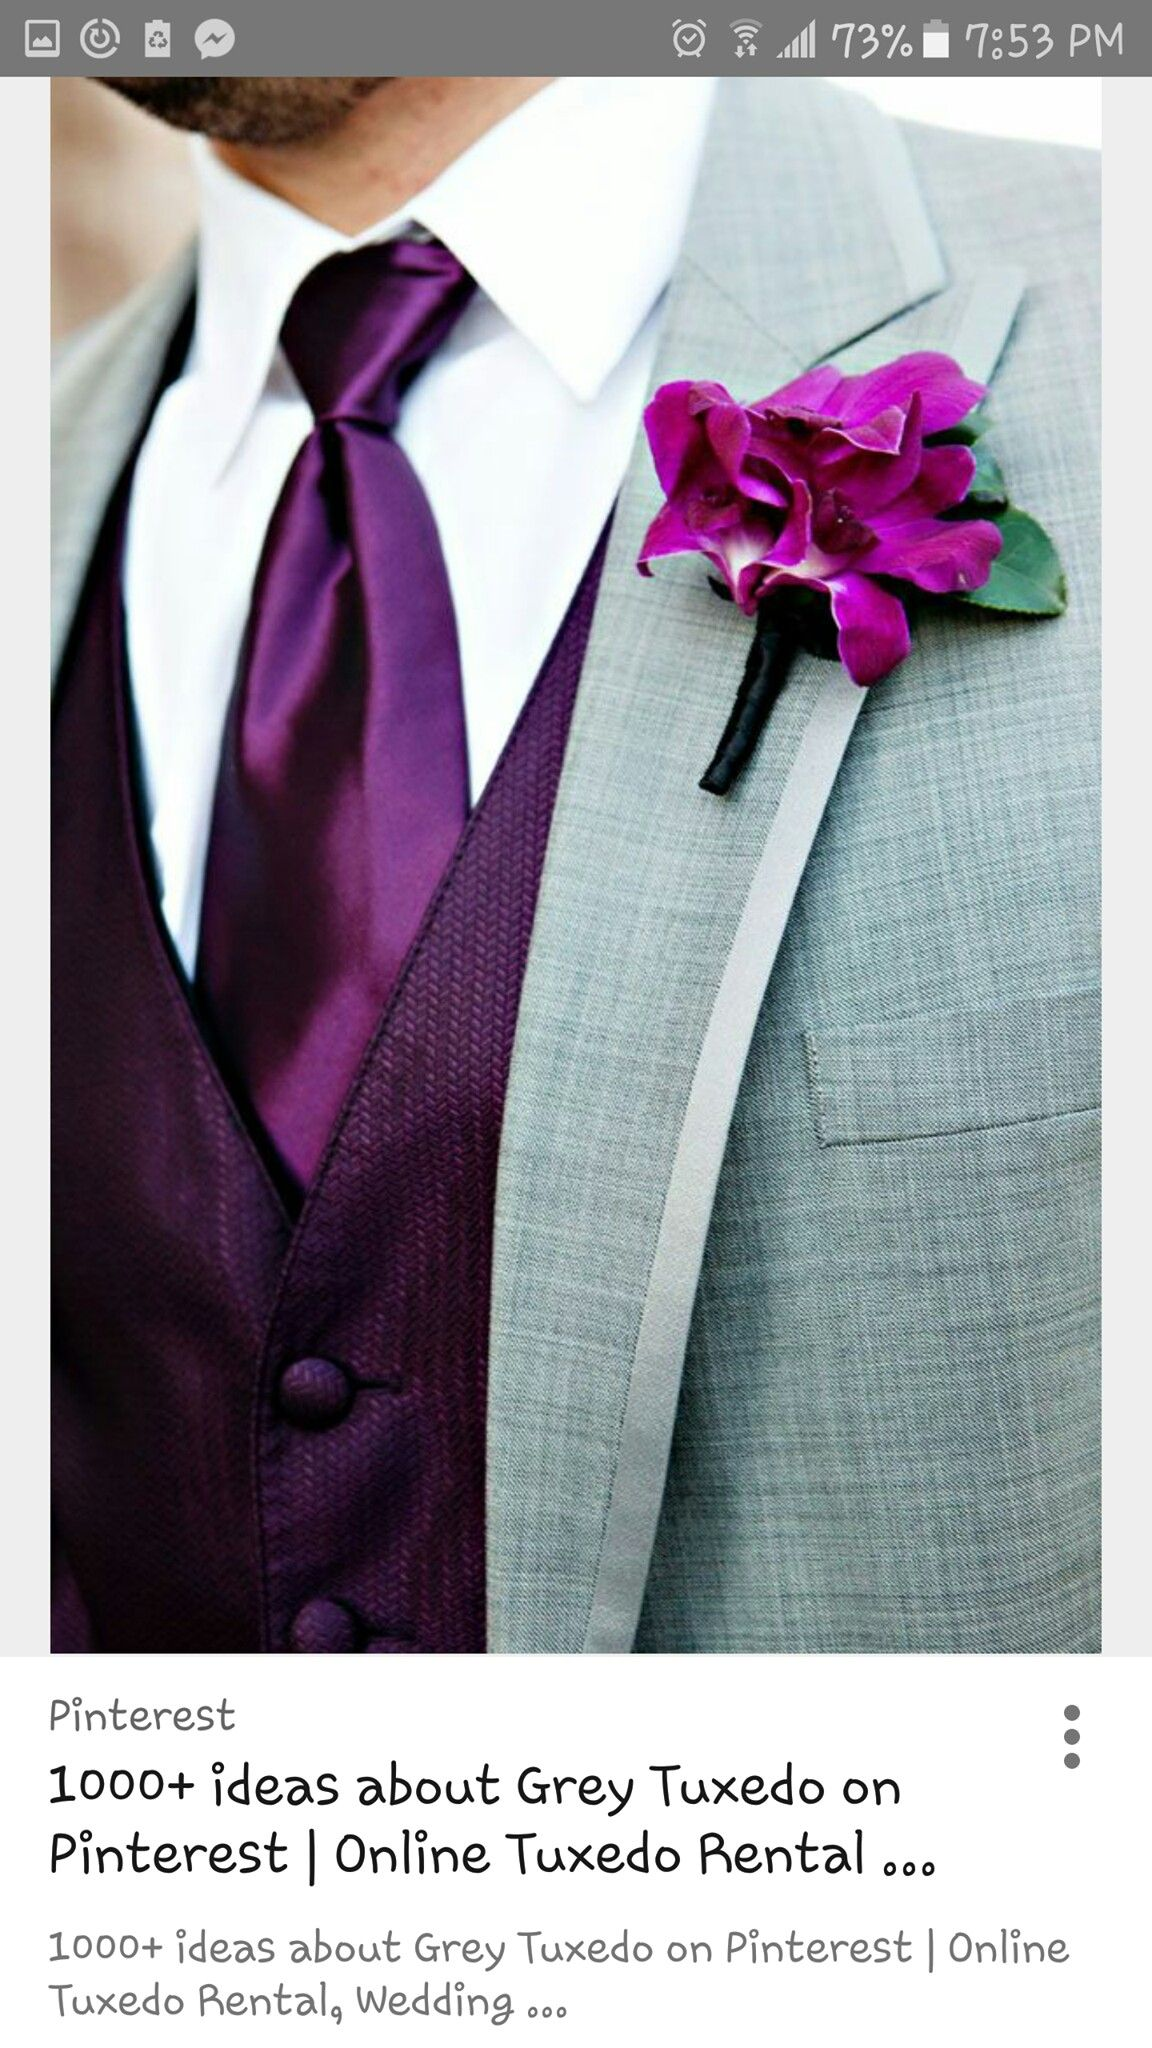 Pin by Nicole Collins on Wedding Ideas | Pinterest | Wedding suits ...